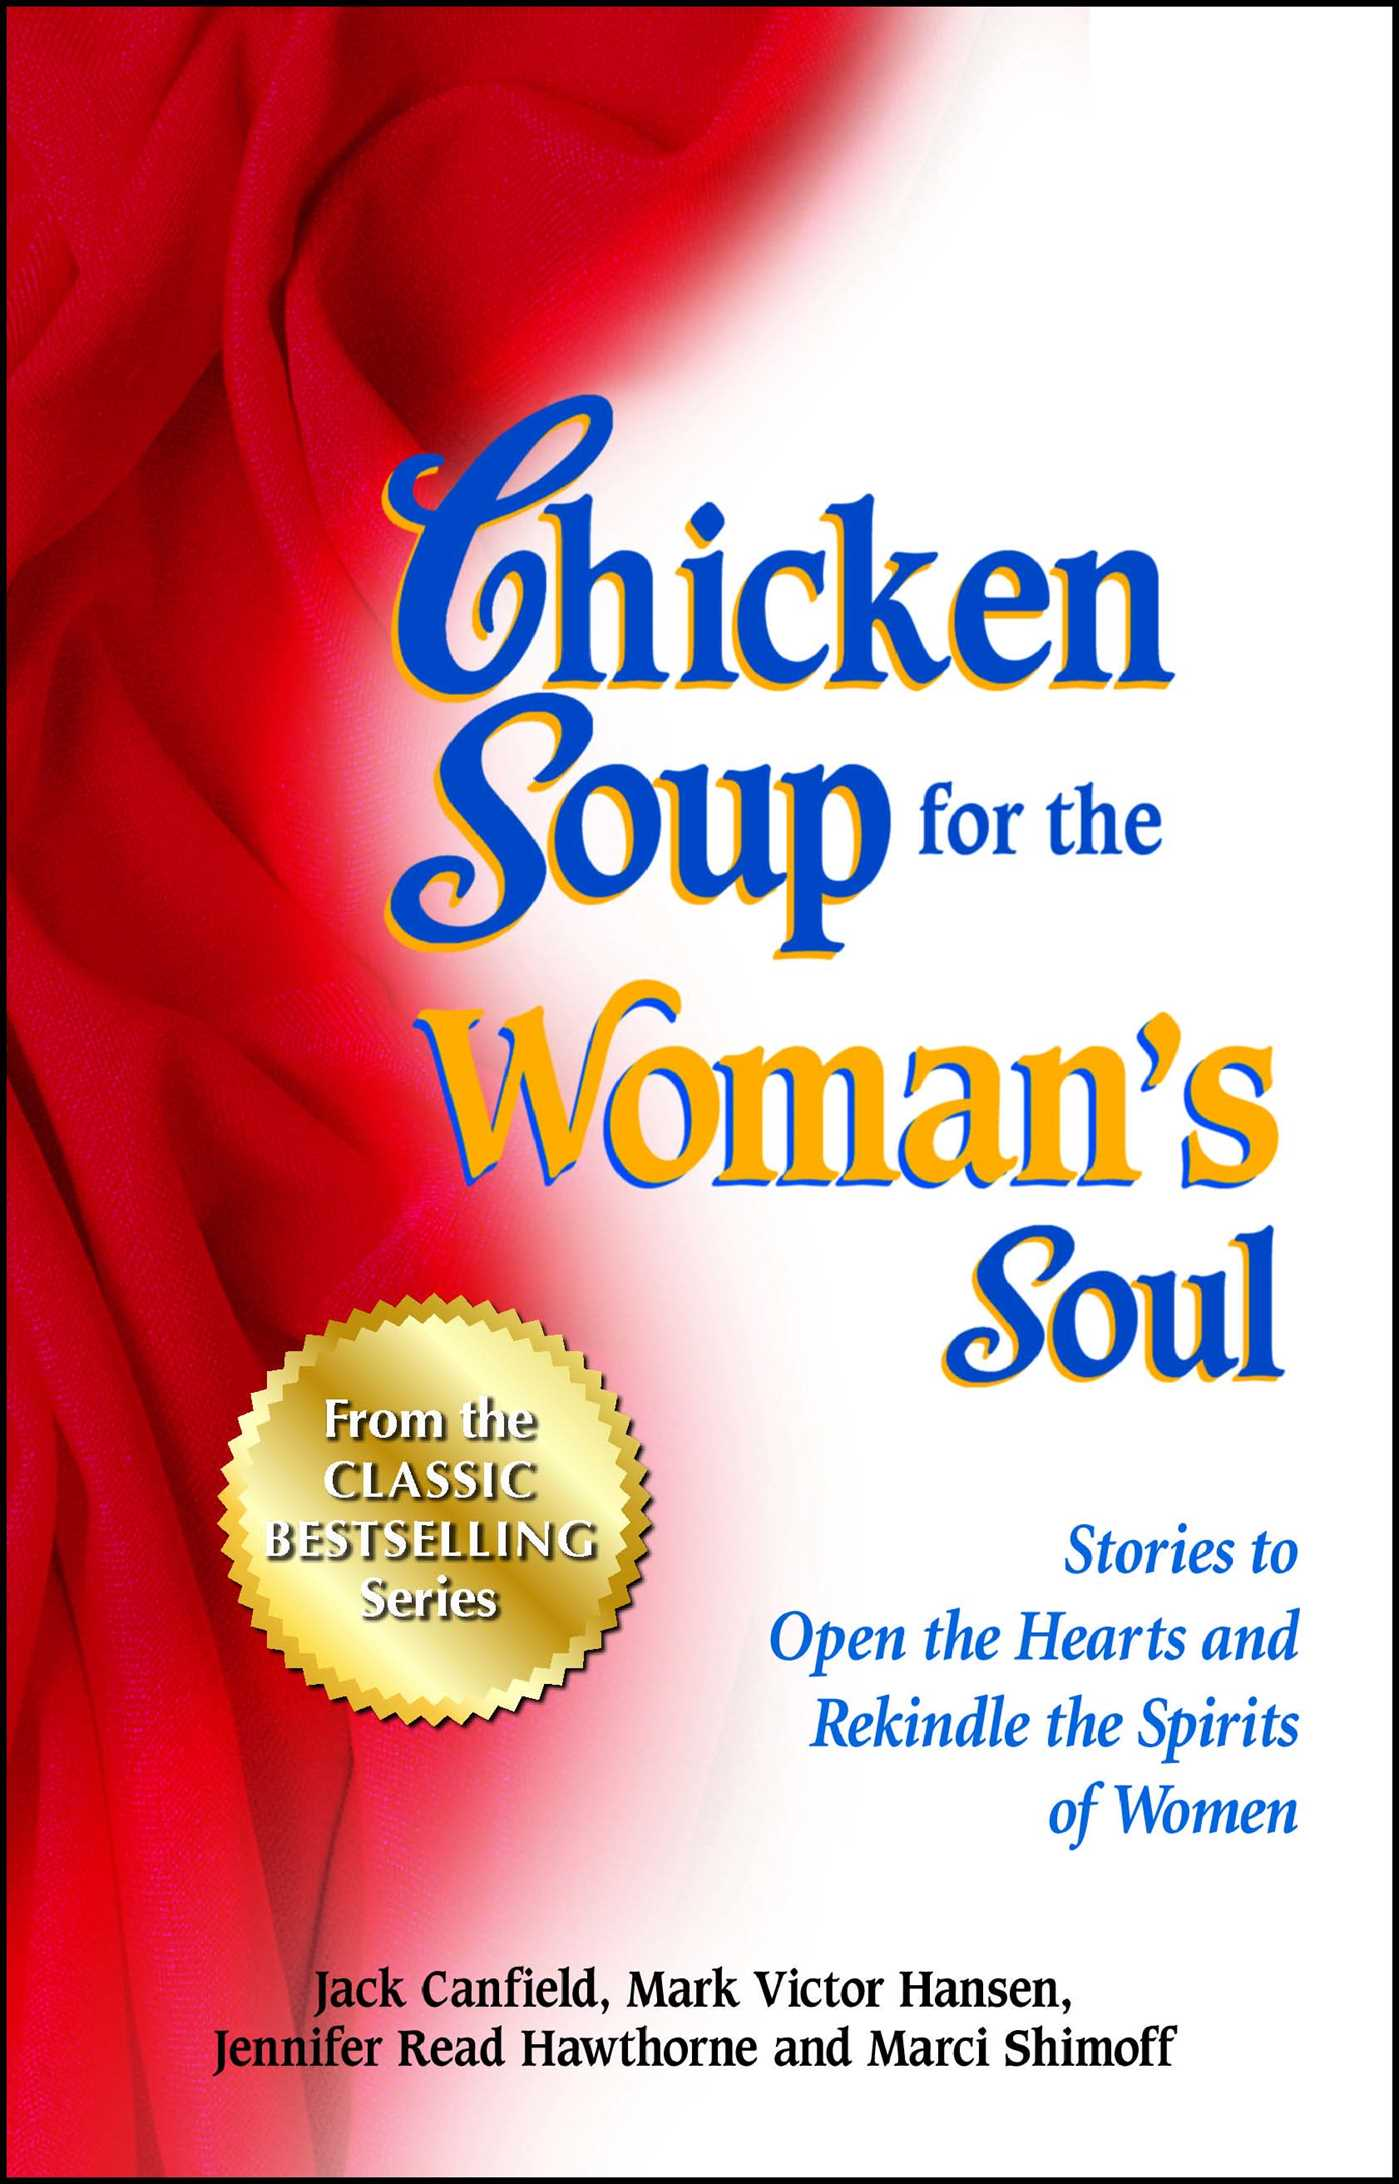 Chicken-soup-for-the-womans-soul-9781623610432_hr